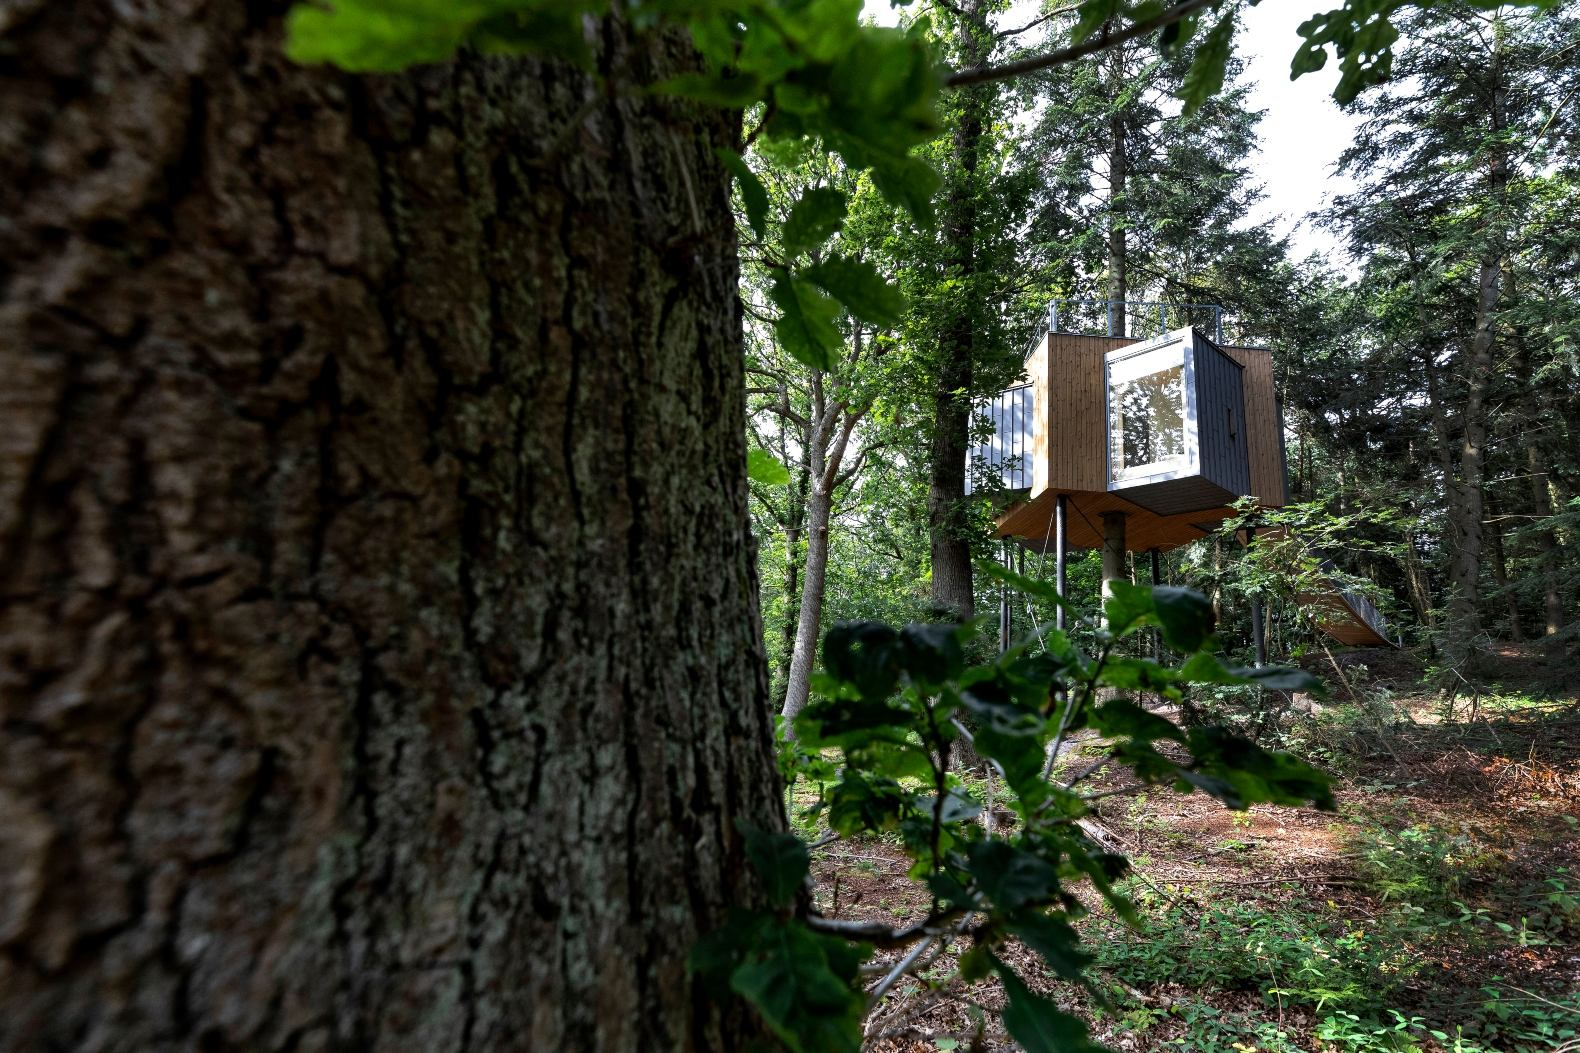 Sigurd Larsen completes a luxurious, treetop hotel cabin in a Danish forest